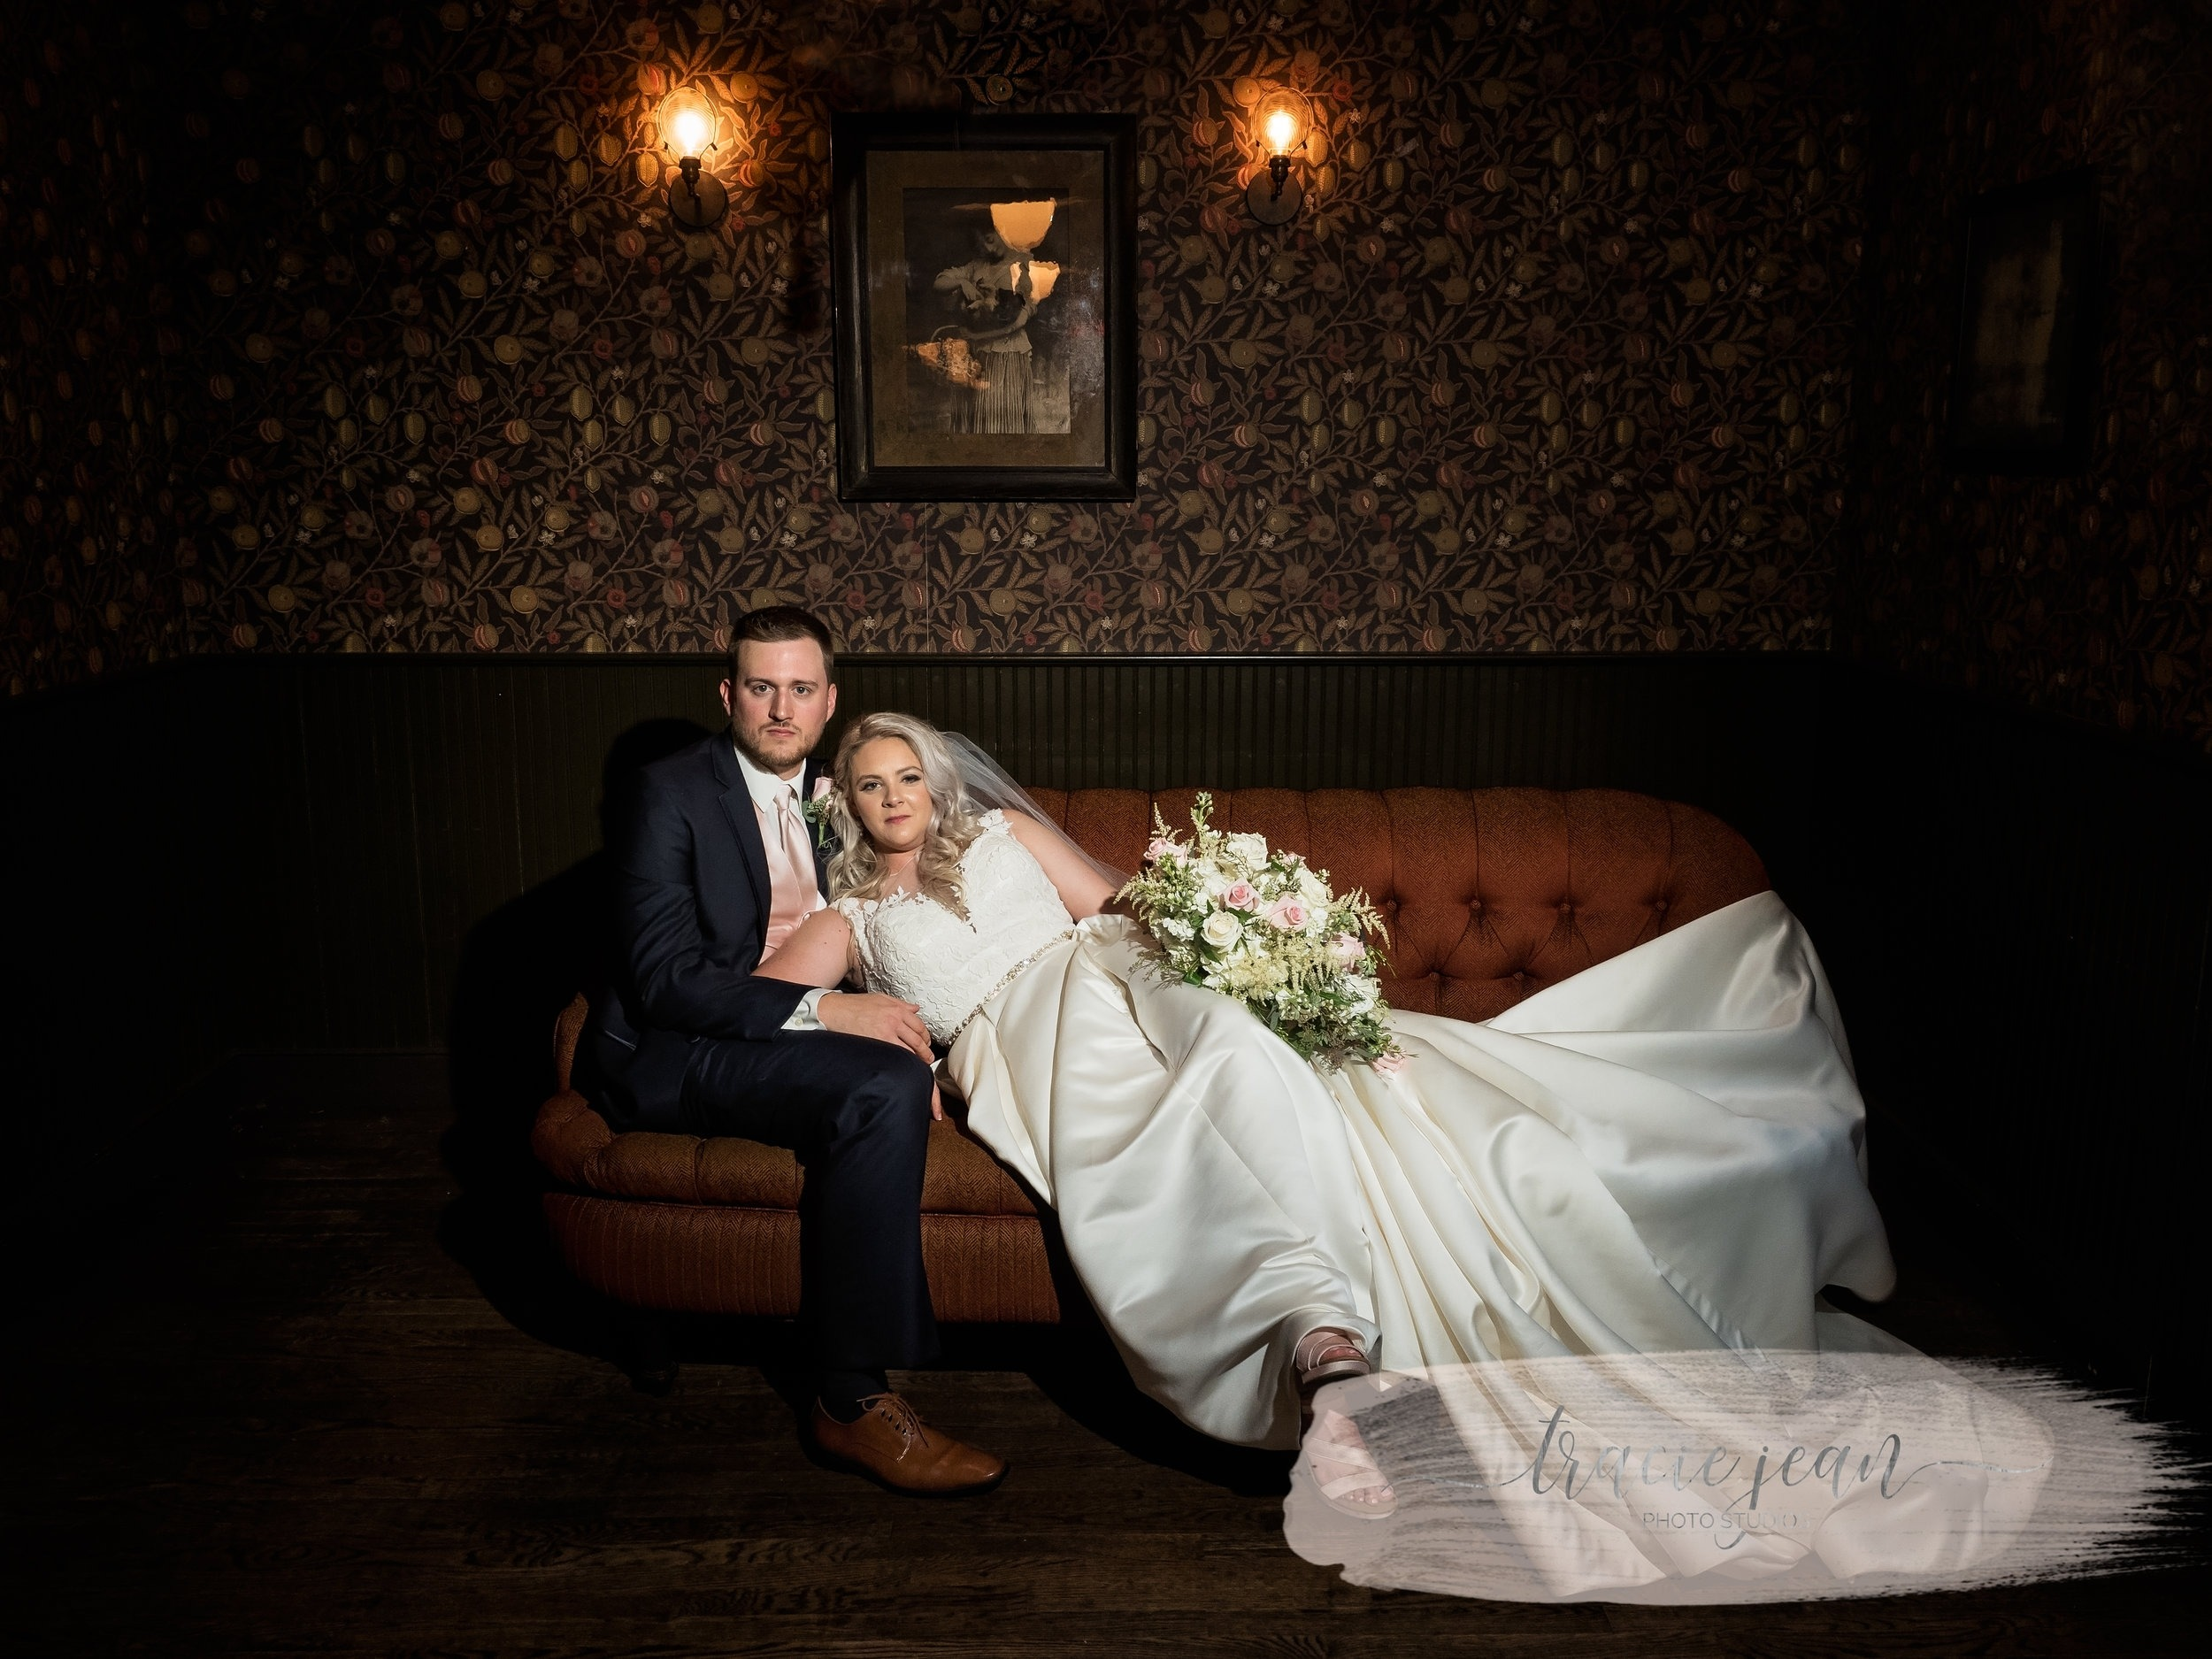 5 Reasons Why the Profoto A1 is the Perfect Solution for Wedding & Portrait Photographers